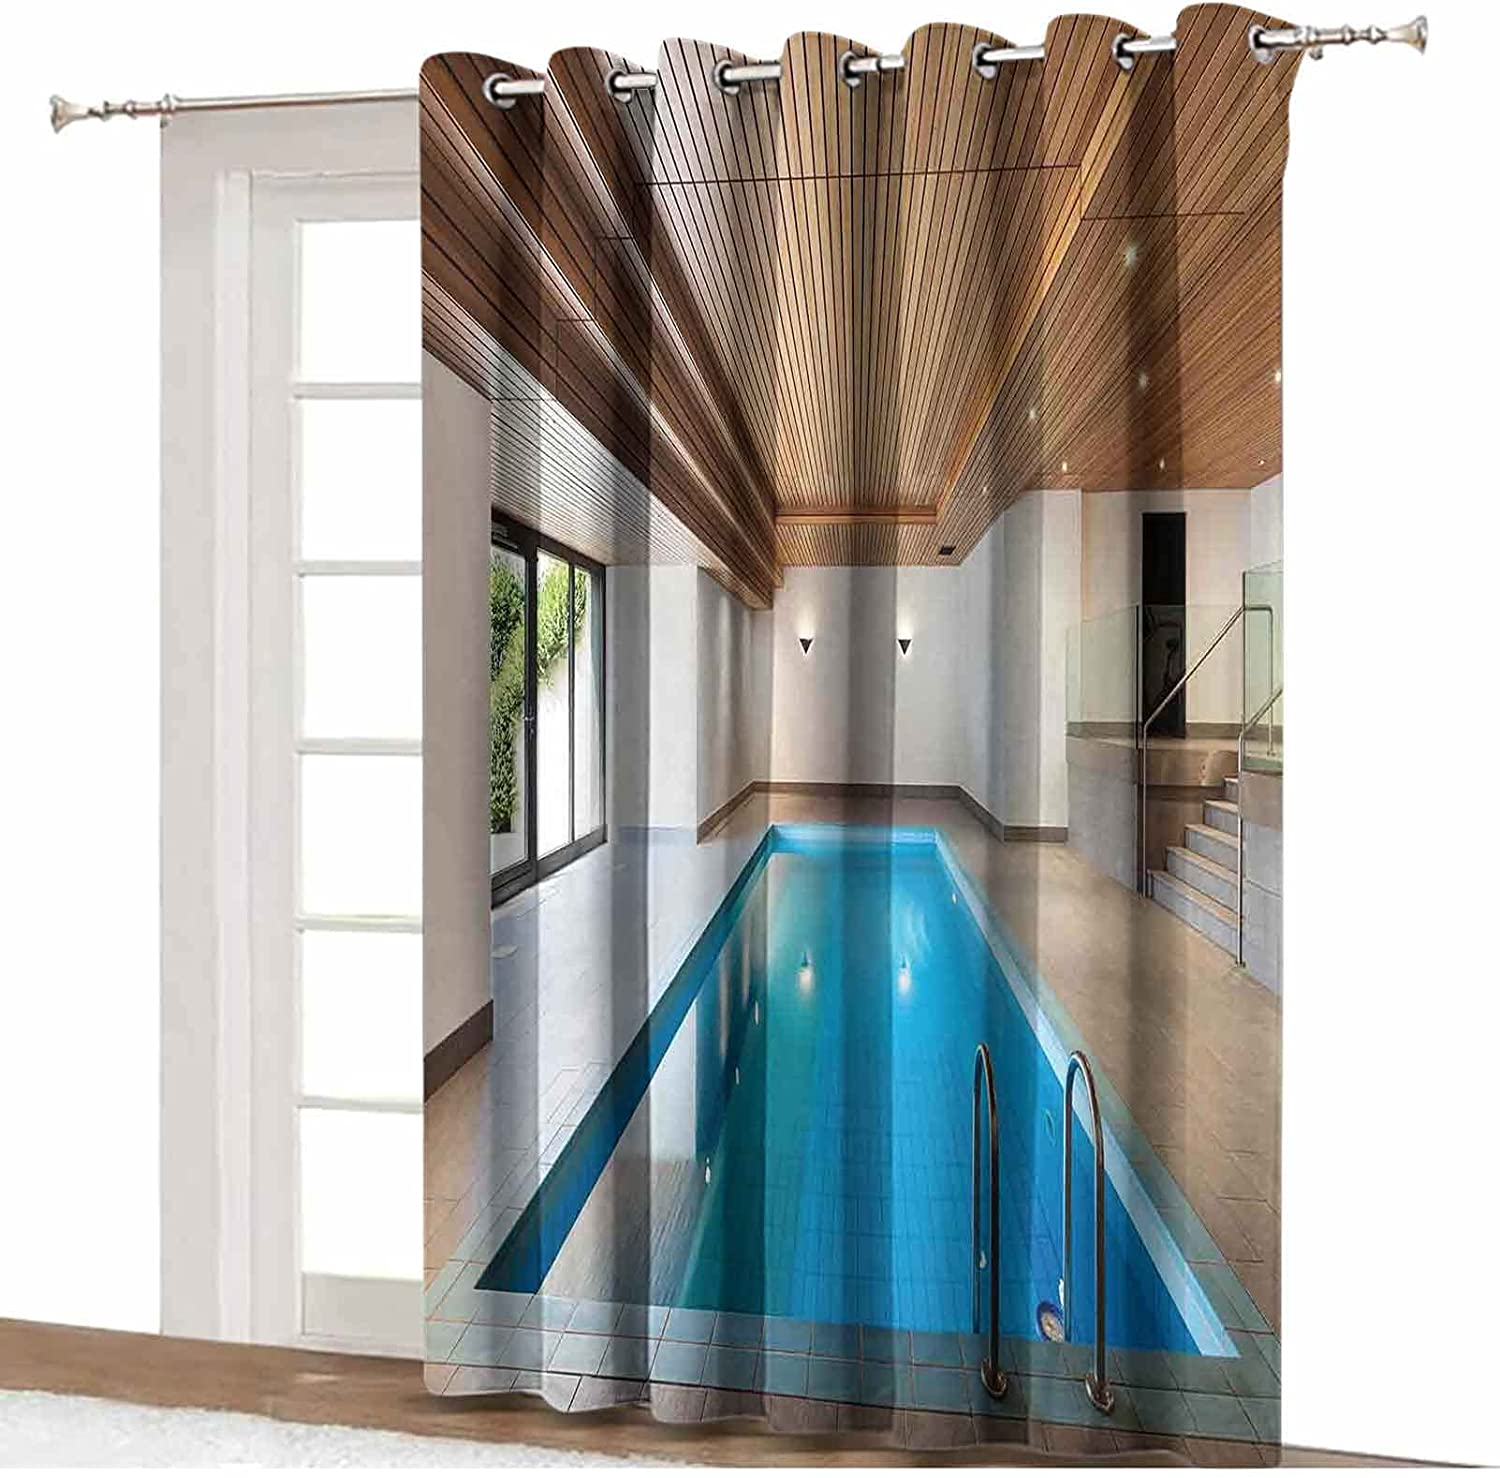 Lyzelre House Decor Room Divider Curtain,Apartment with Indoor Pool Wooden Ceiling Private Resident Stylish Home Perspective Room Divider Curtain Screen Partition,12'x8',for Bedroom Partition